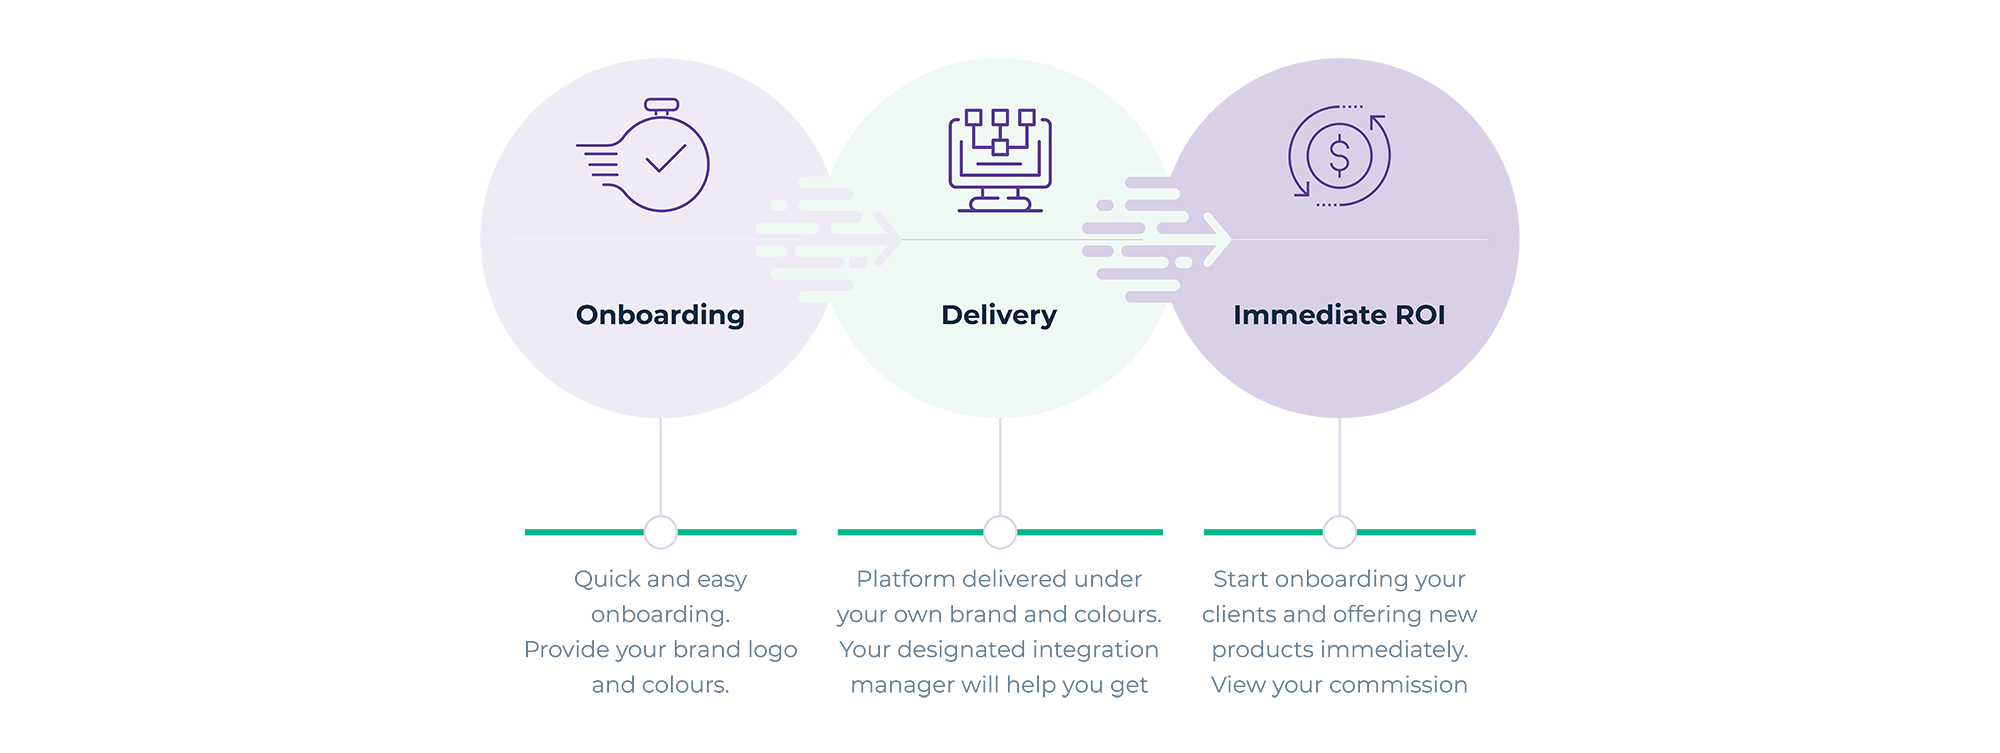 X Hedge Onboarding Delivery ROI Hero